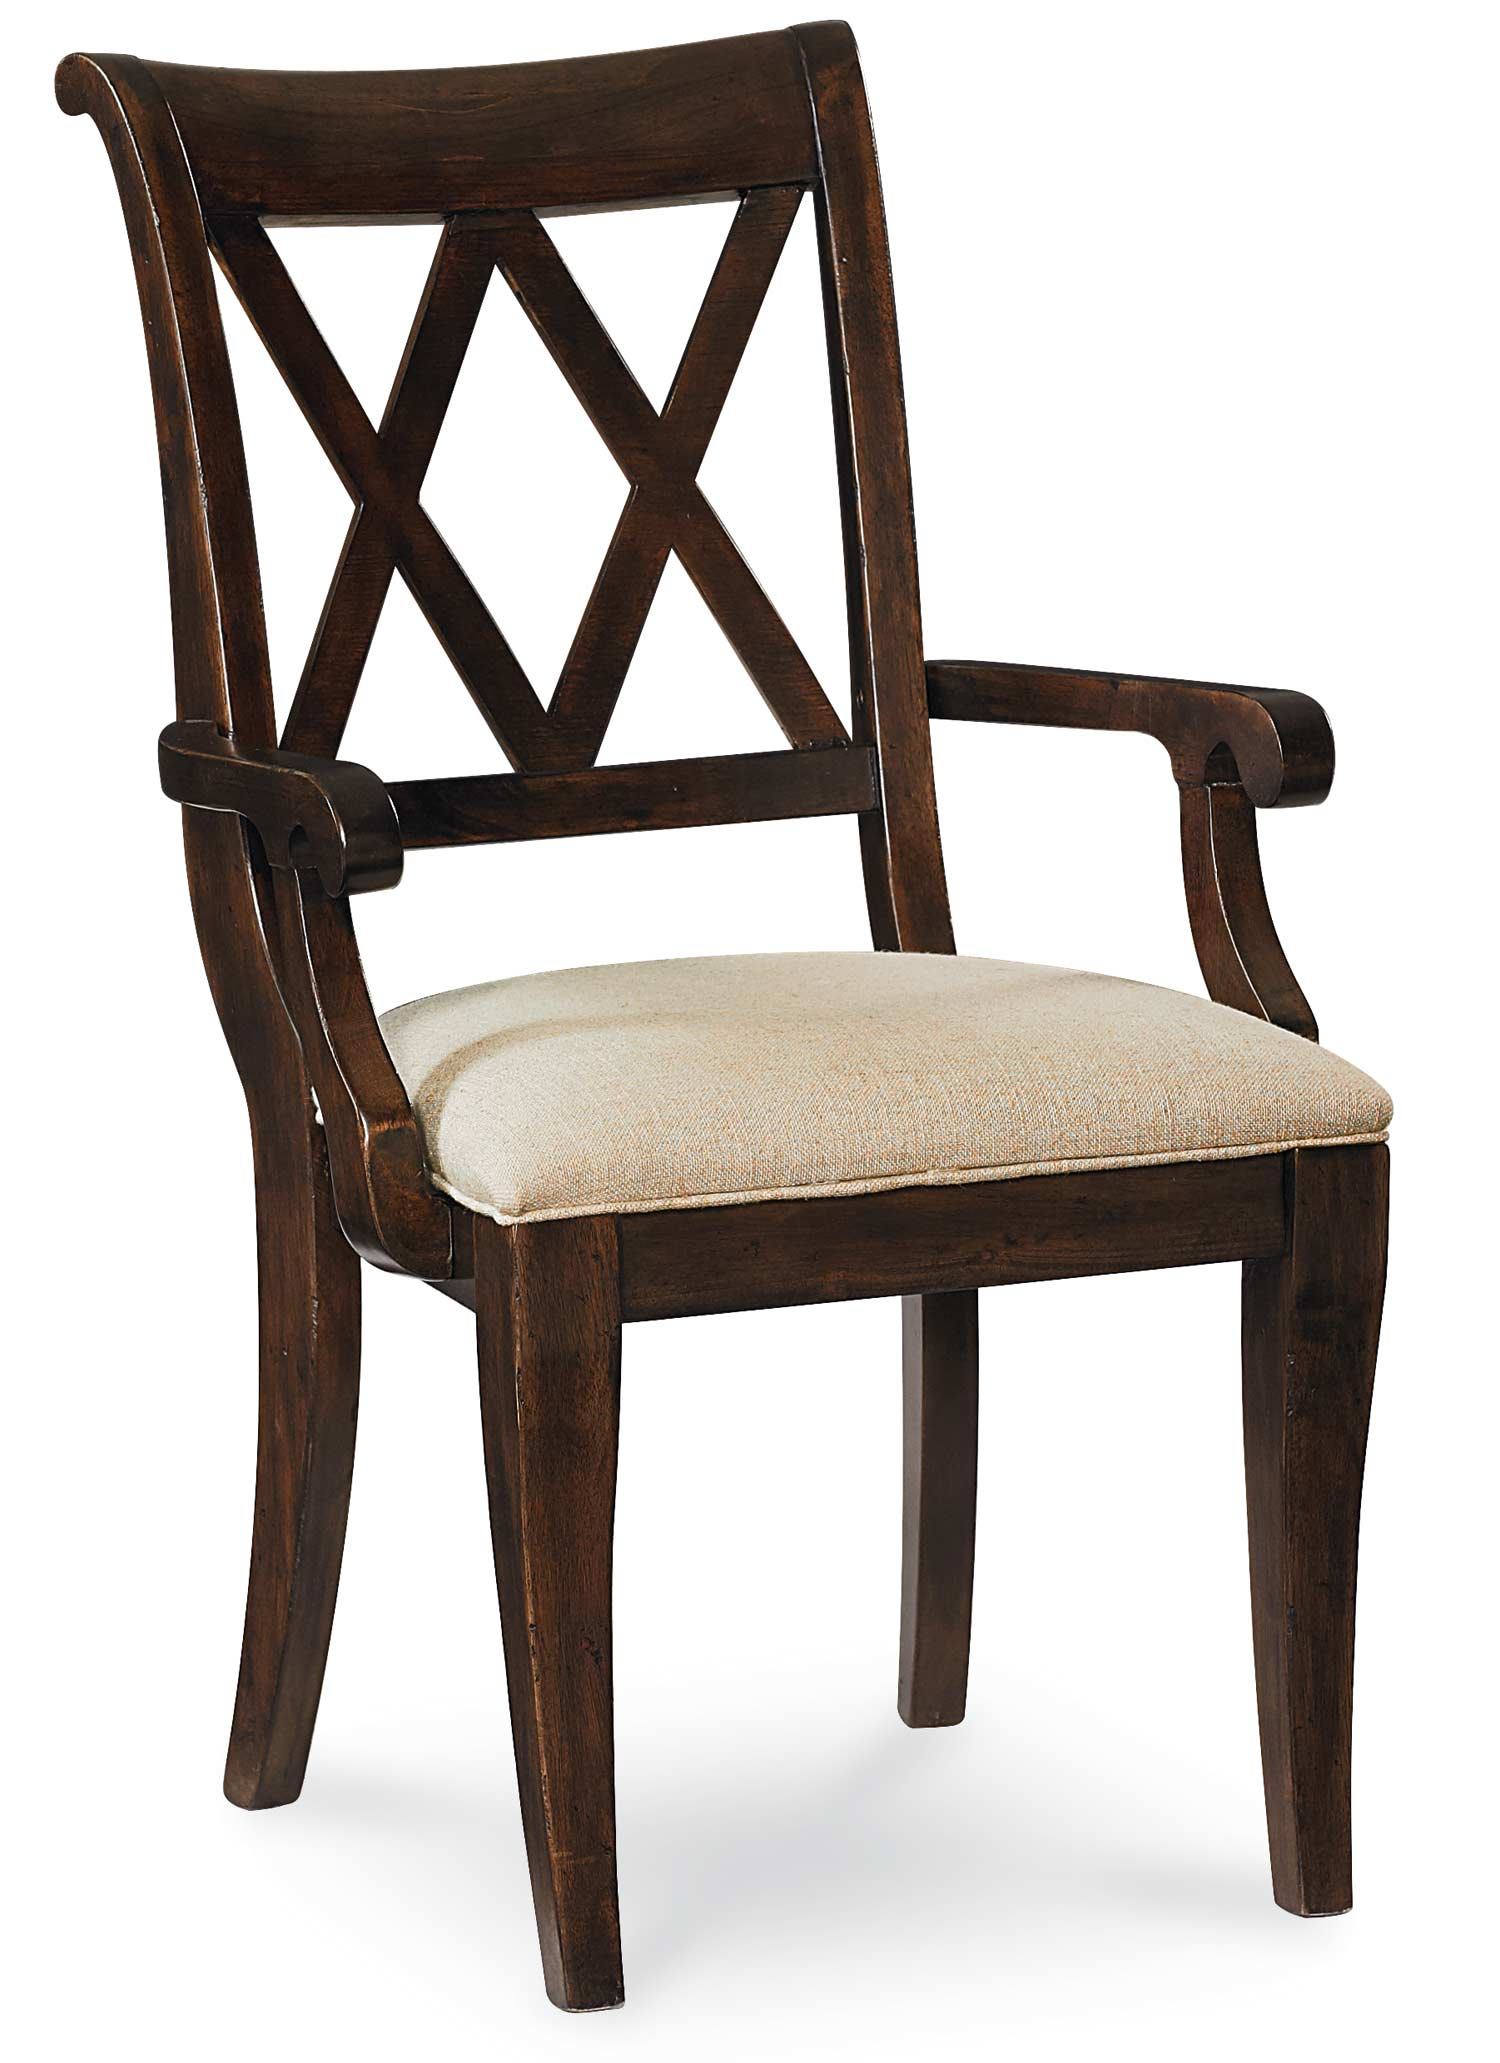 Legacy Classic Thatcher X Back Arm Chair - Amber